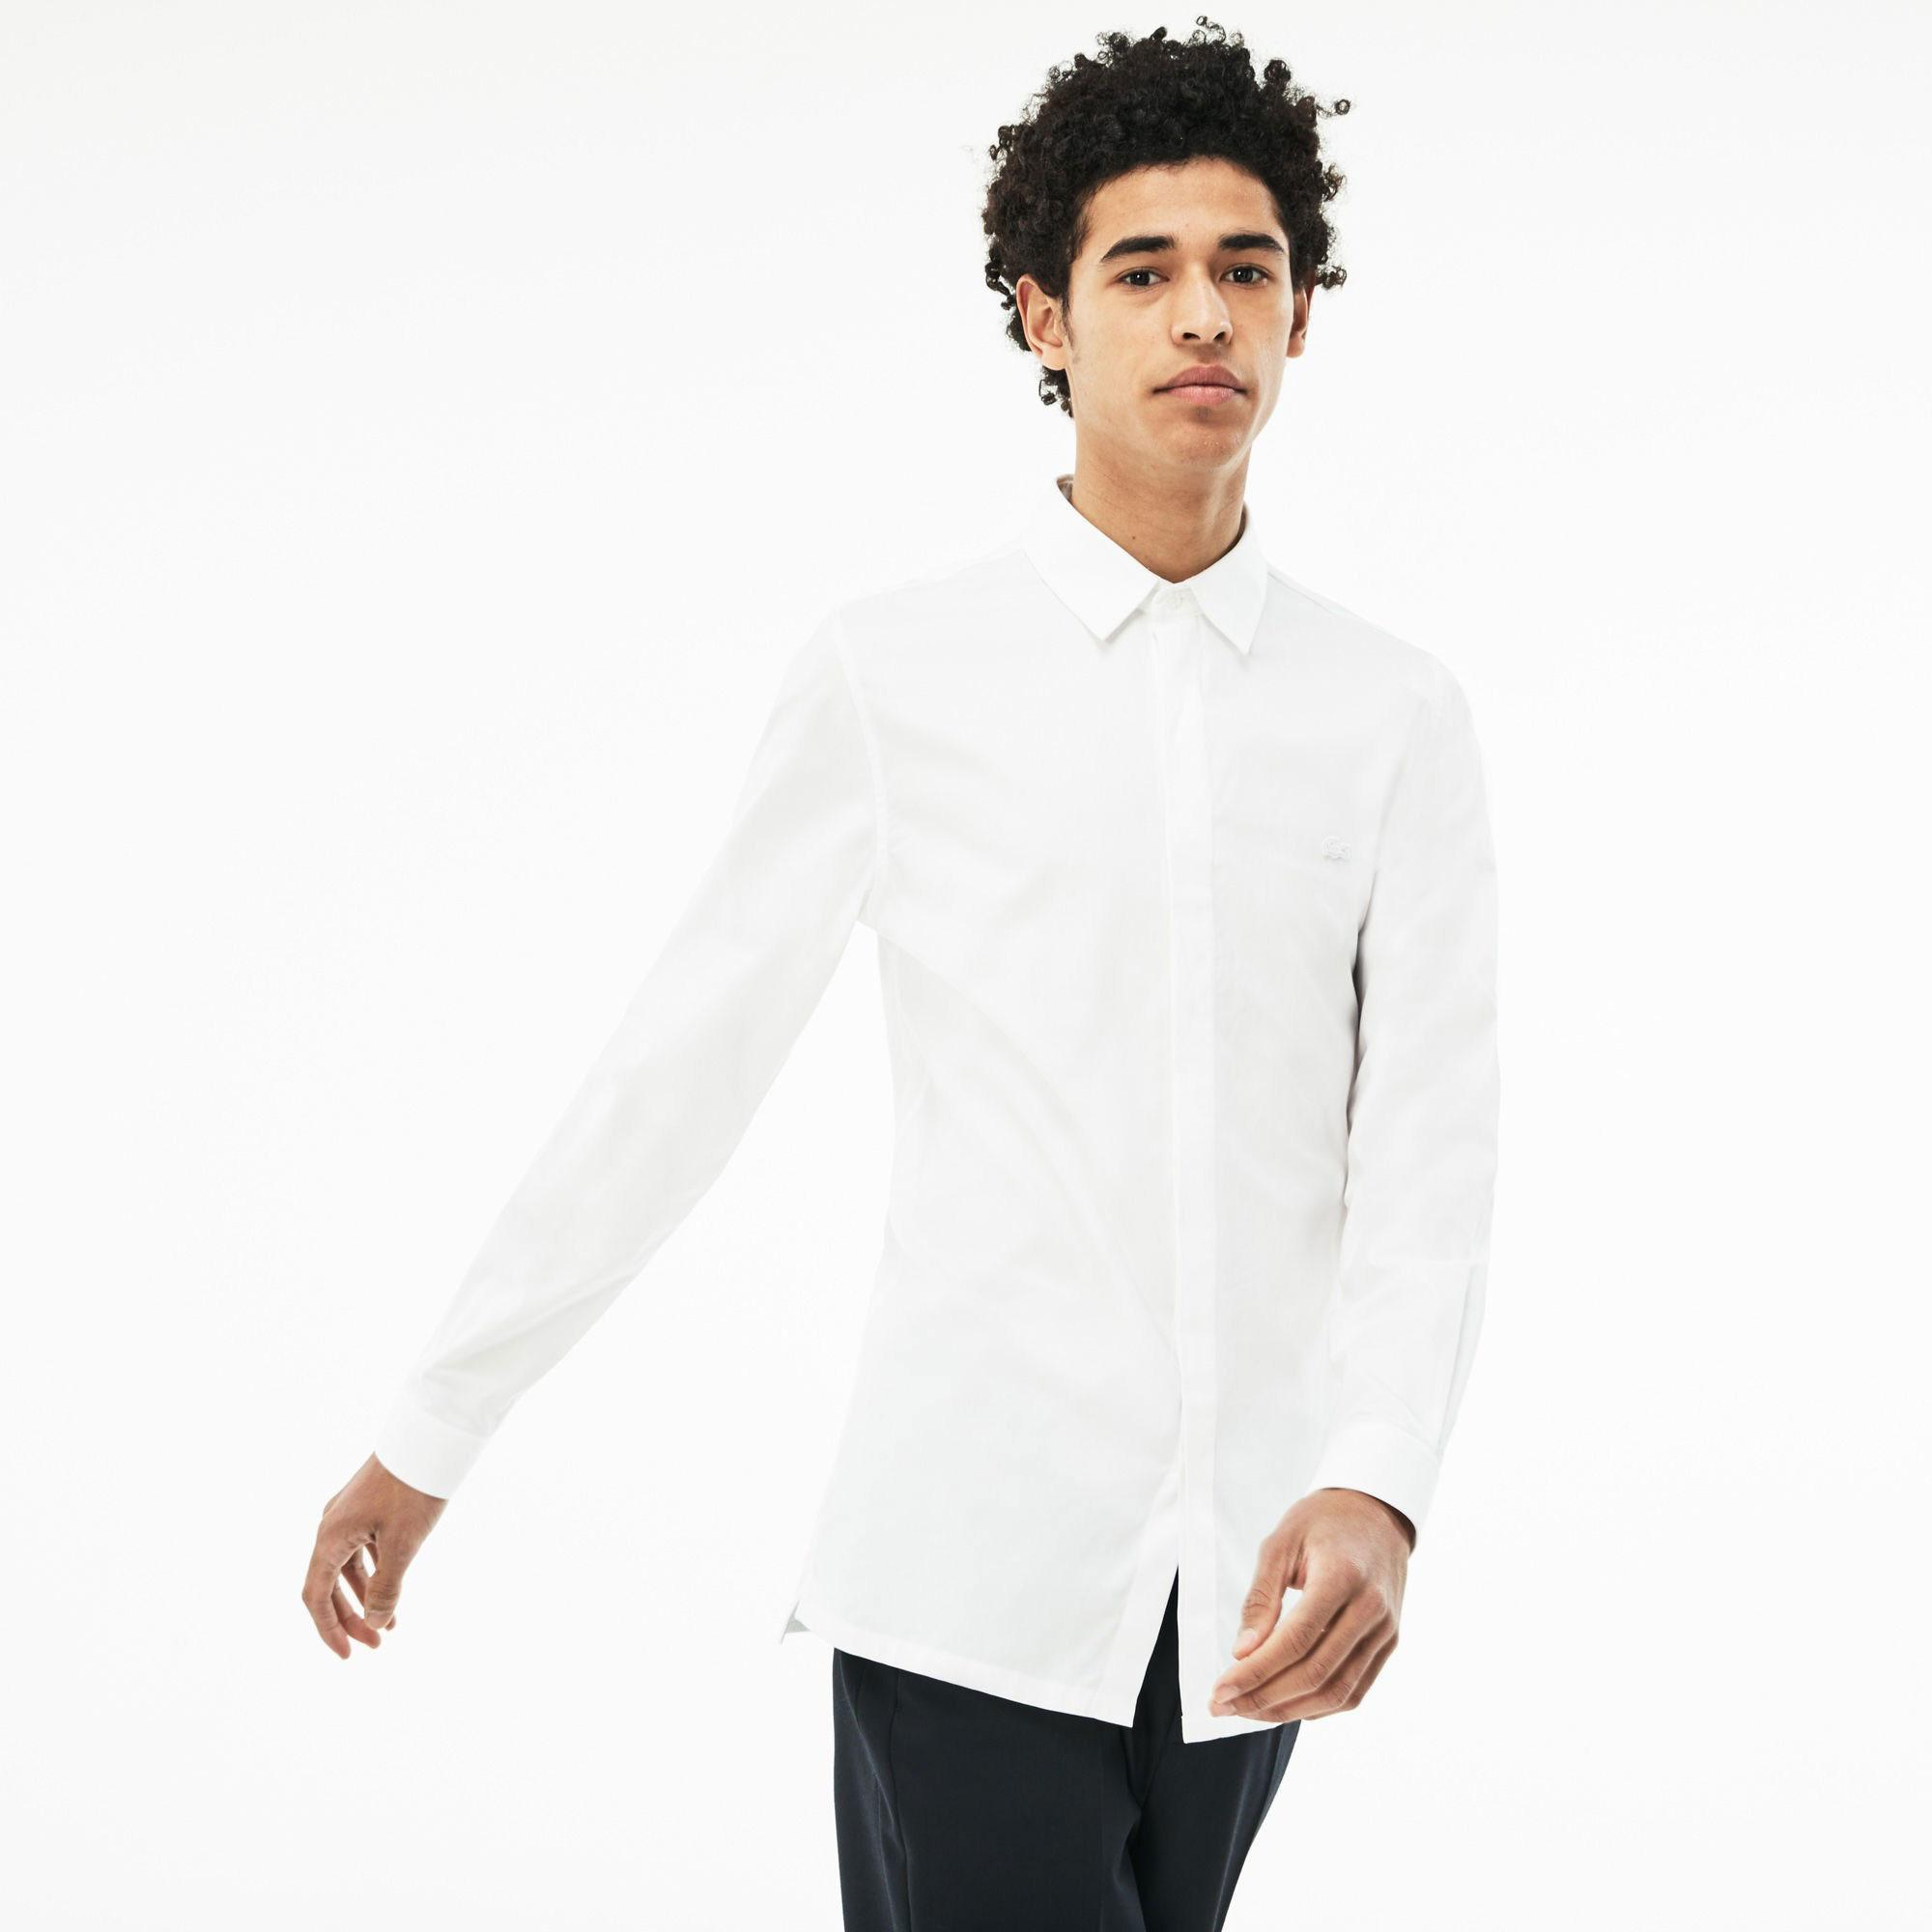 Lacoste Motion Men's Slim Fit Pique Shirt